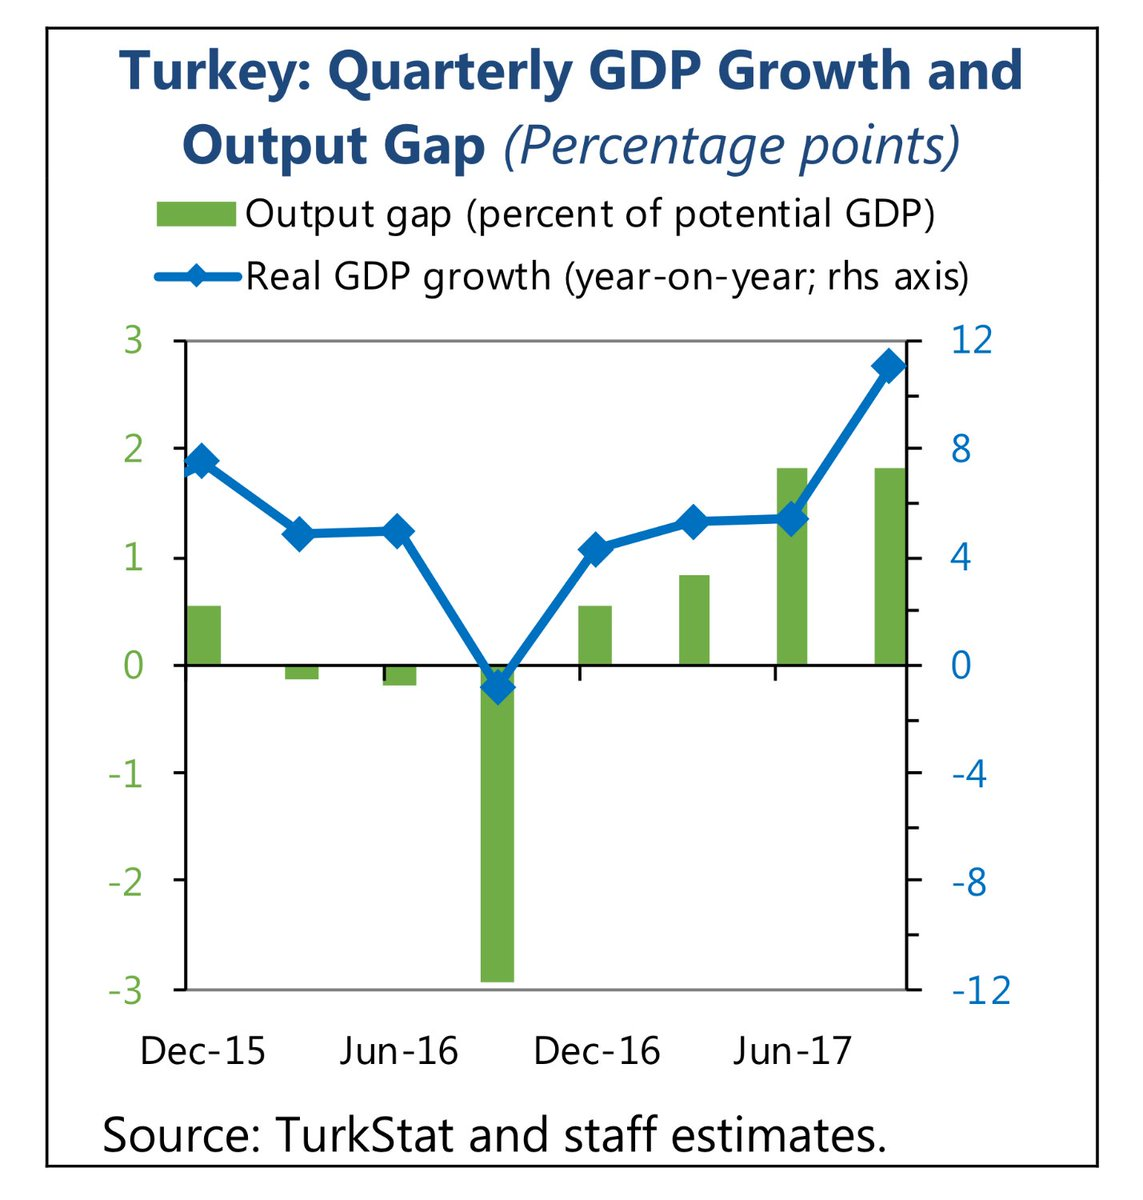 hight resolution of authorities should also push ahead with structural reforms http ow ly ltkq30jlxip see imf staff report here http ow ly duqf30jlxiq pic twitter com